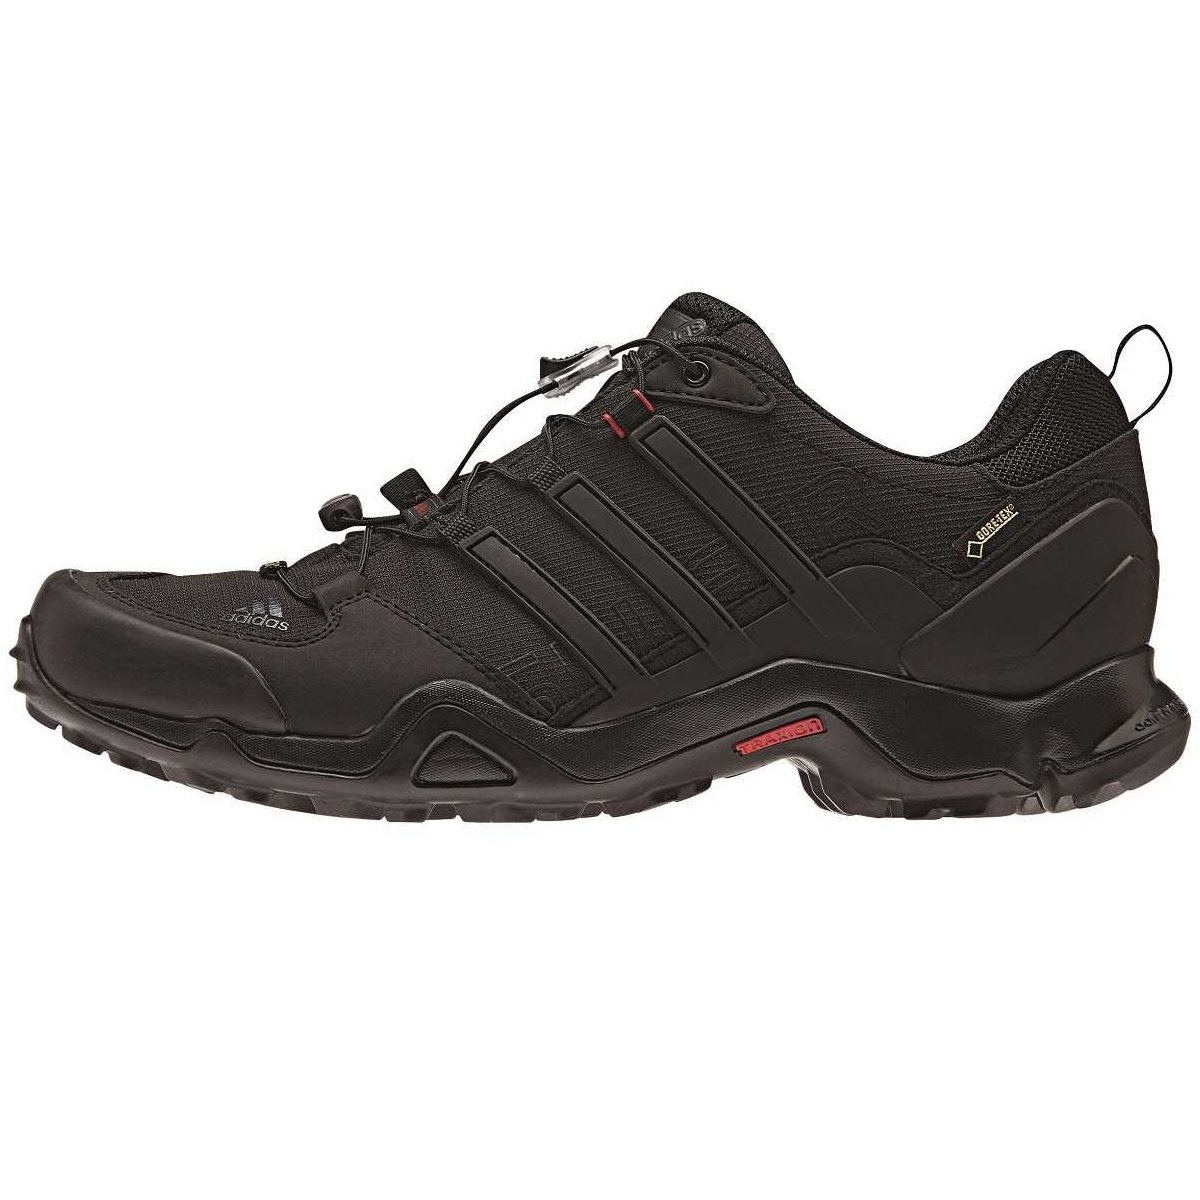 adidas terrex swift r gtx gore tex schuhe wanderschuhe trekkingschuhe herren ebay. Black Bedroom Furniture Sets. Home Design Ideas